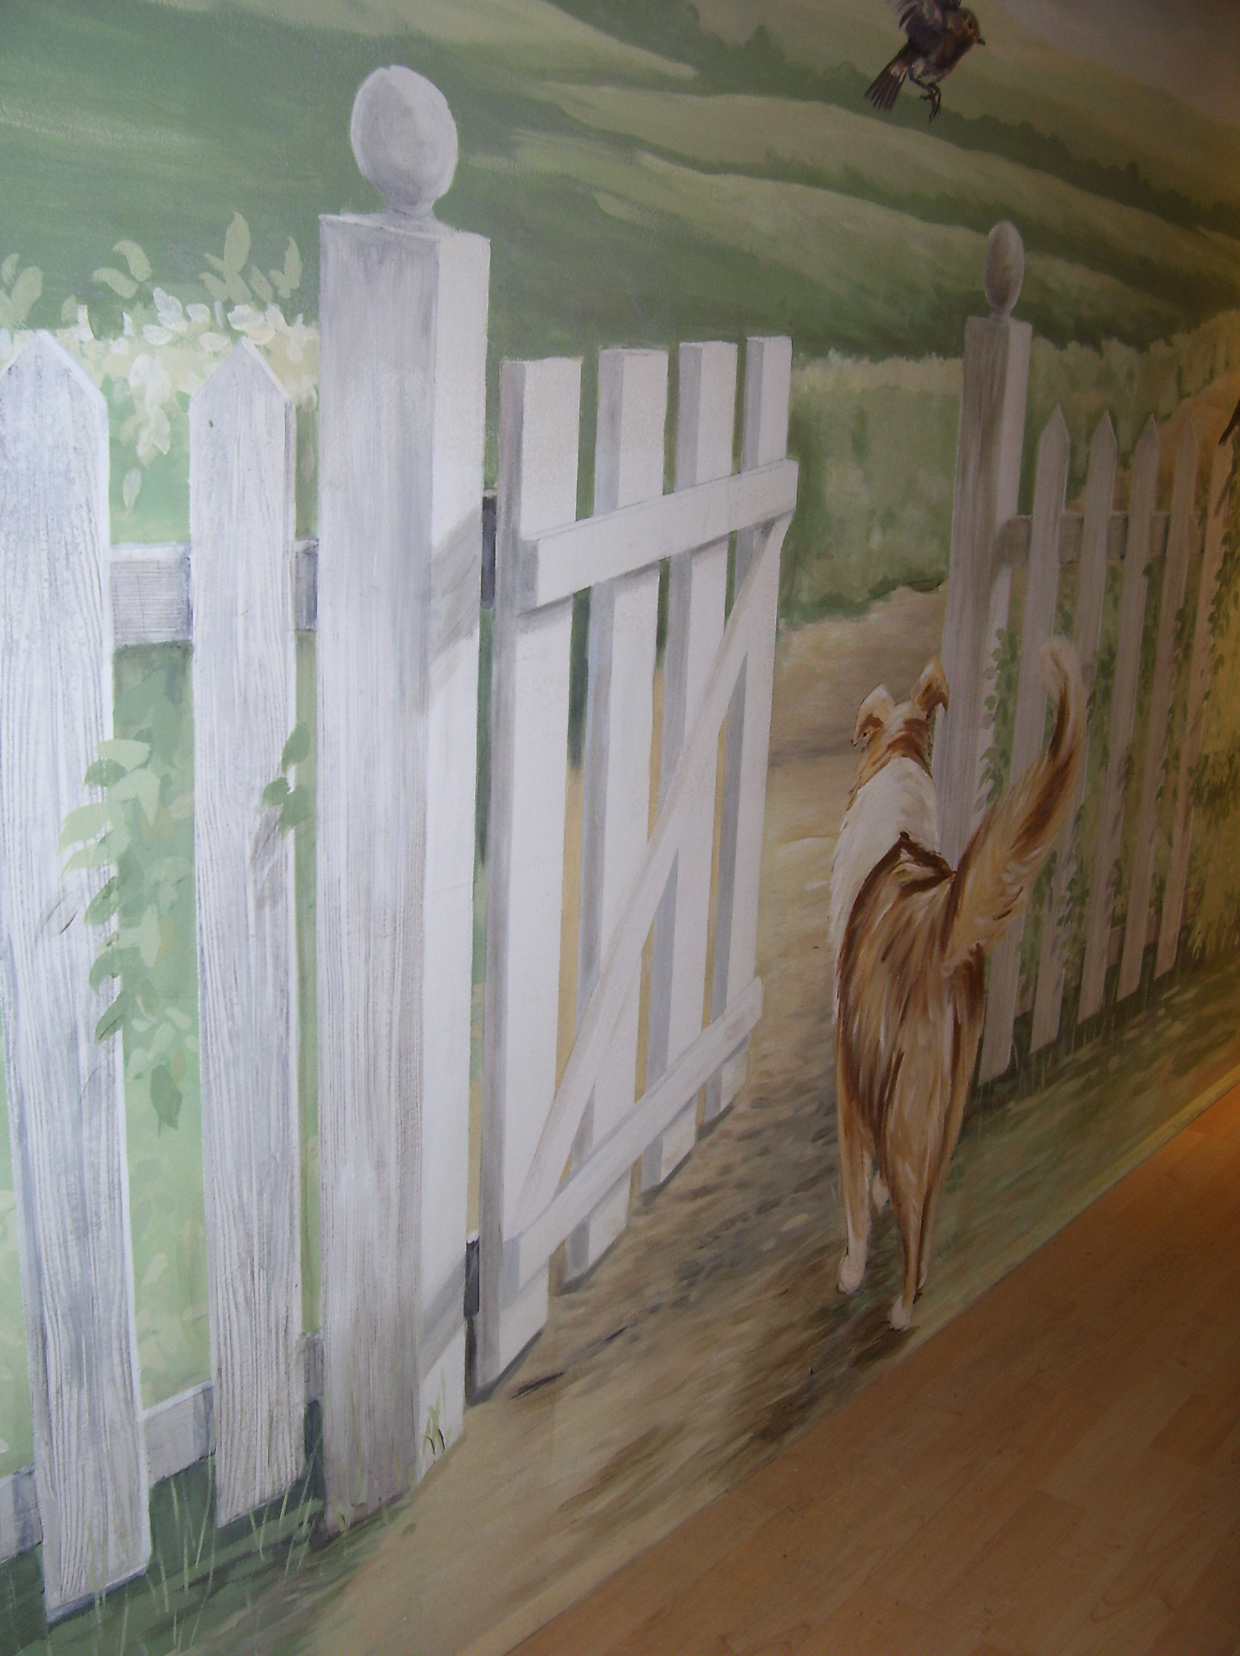 Murals By Marg Becoming Mural 3.JPG